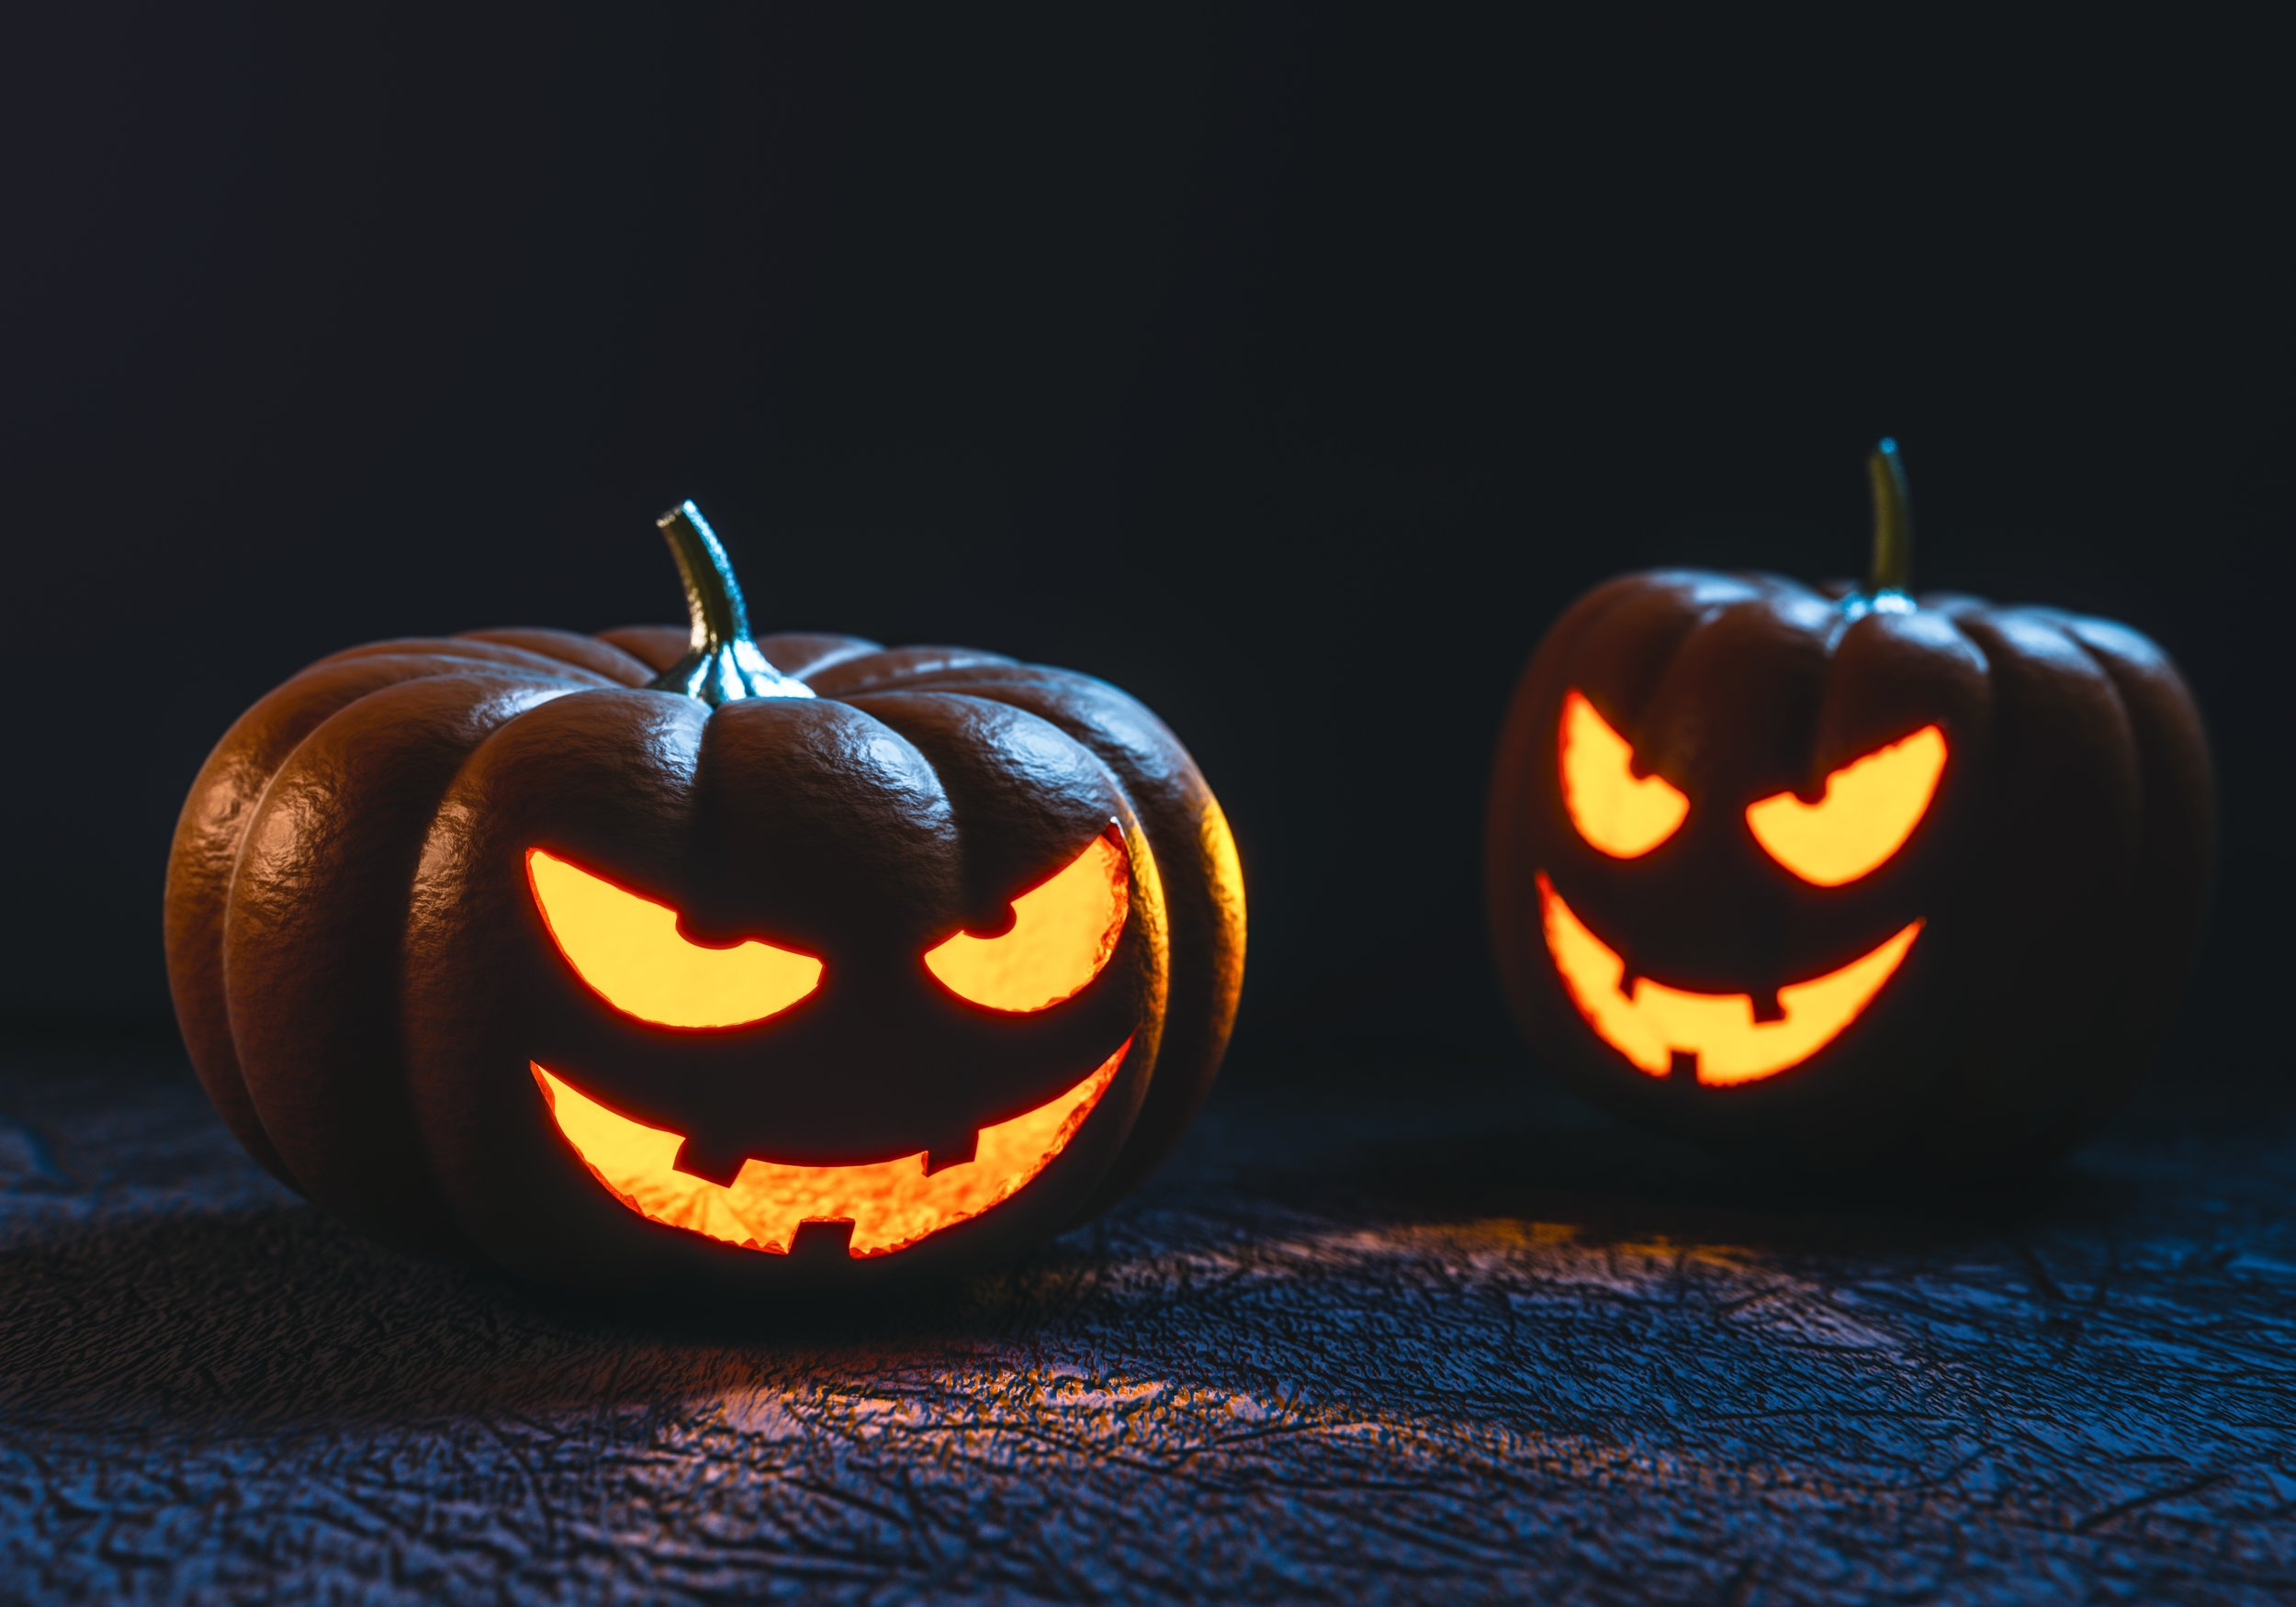 Two carved pumpkins with mischievous faces.